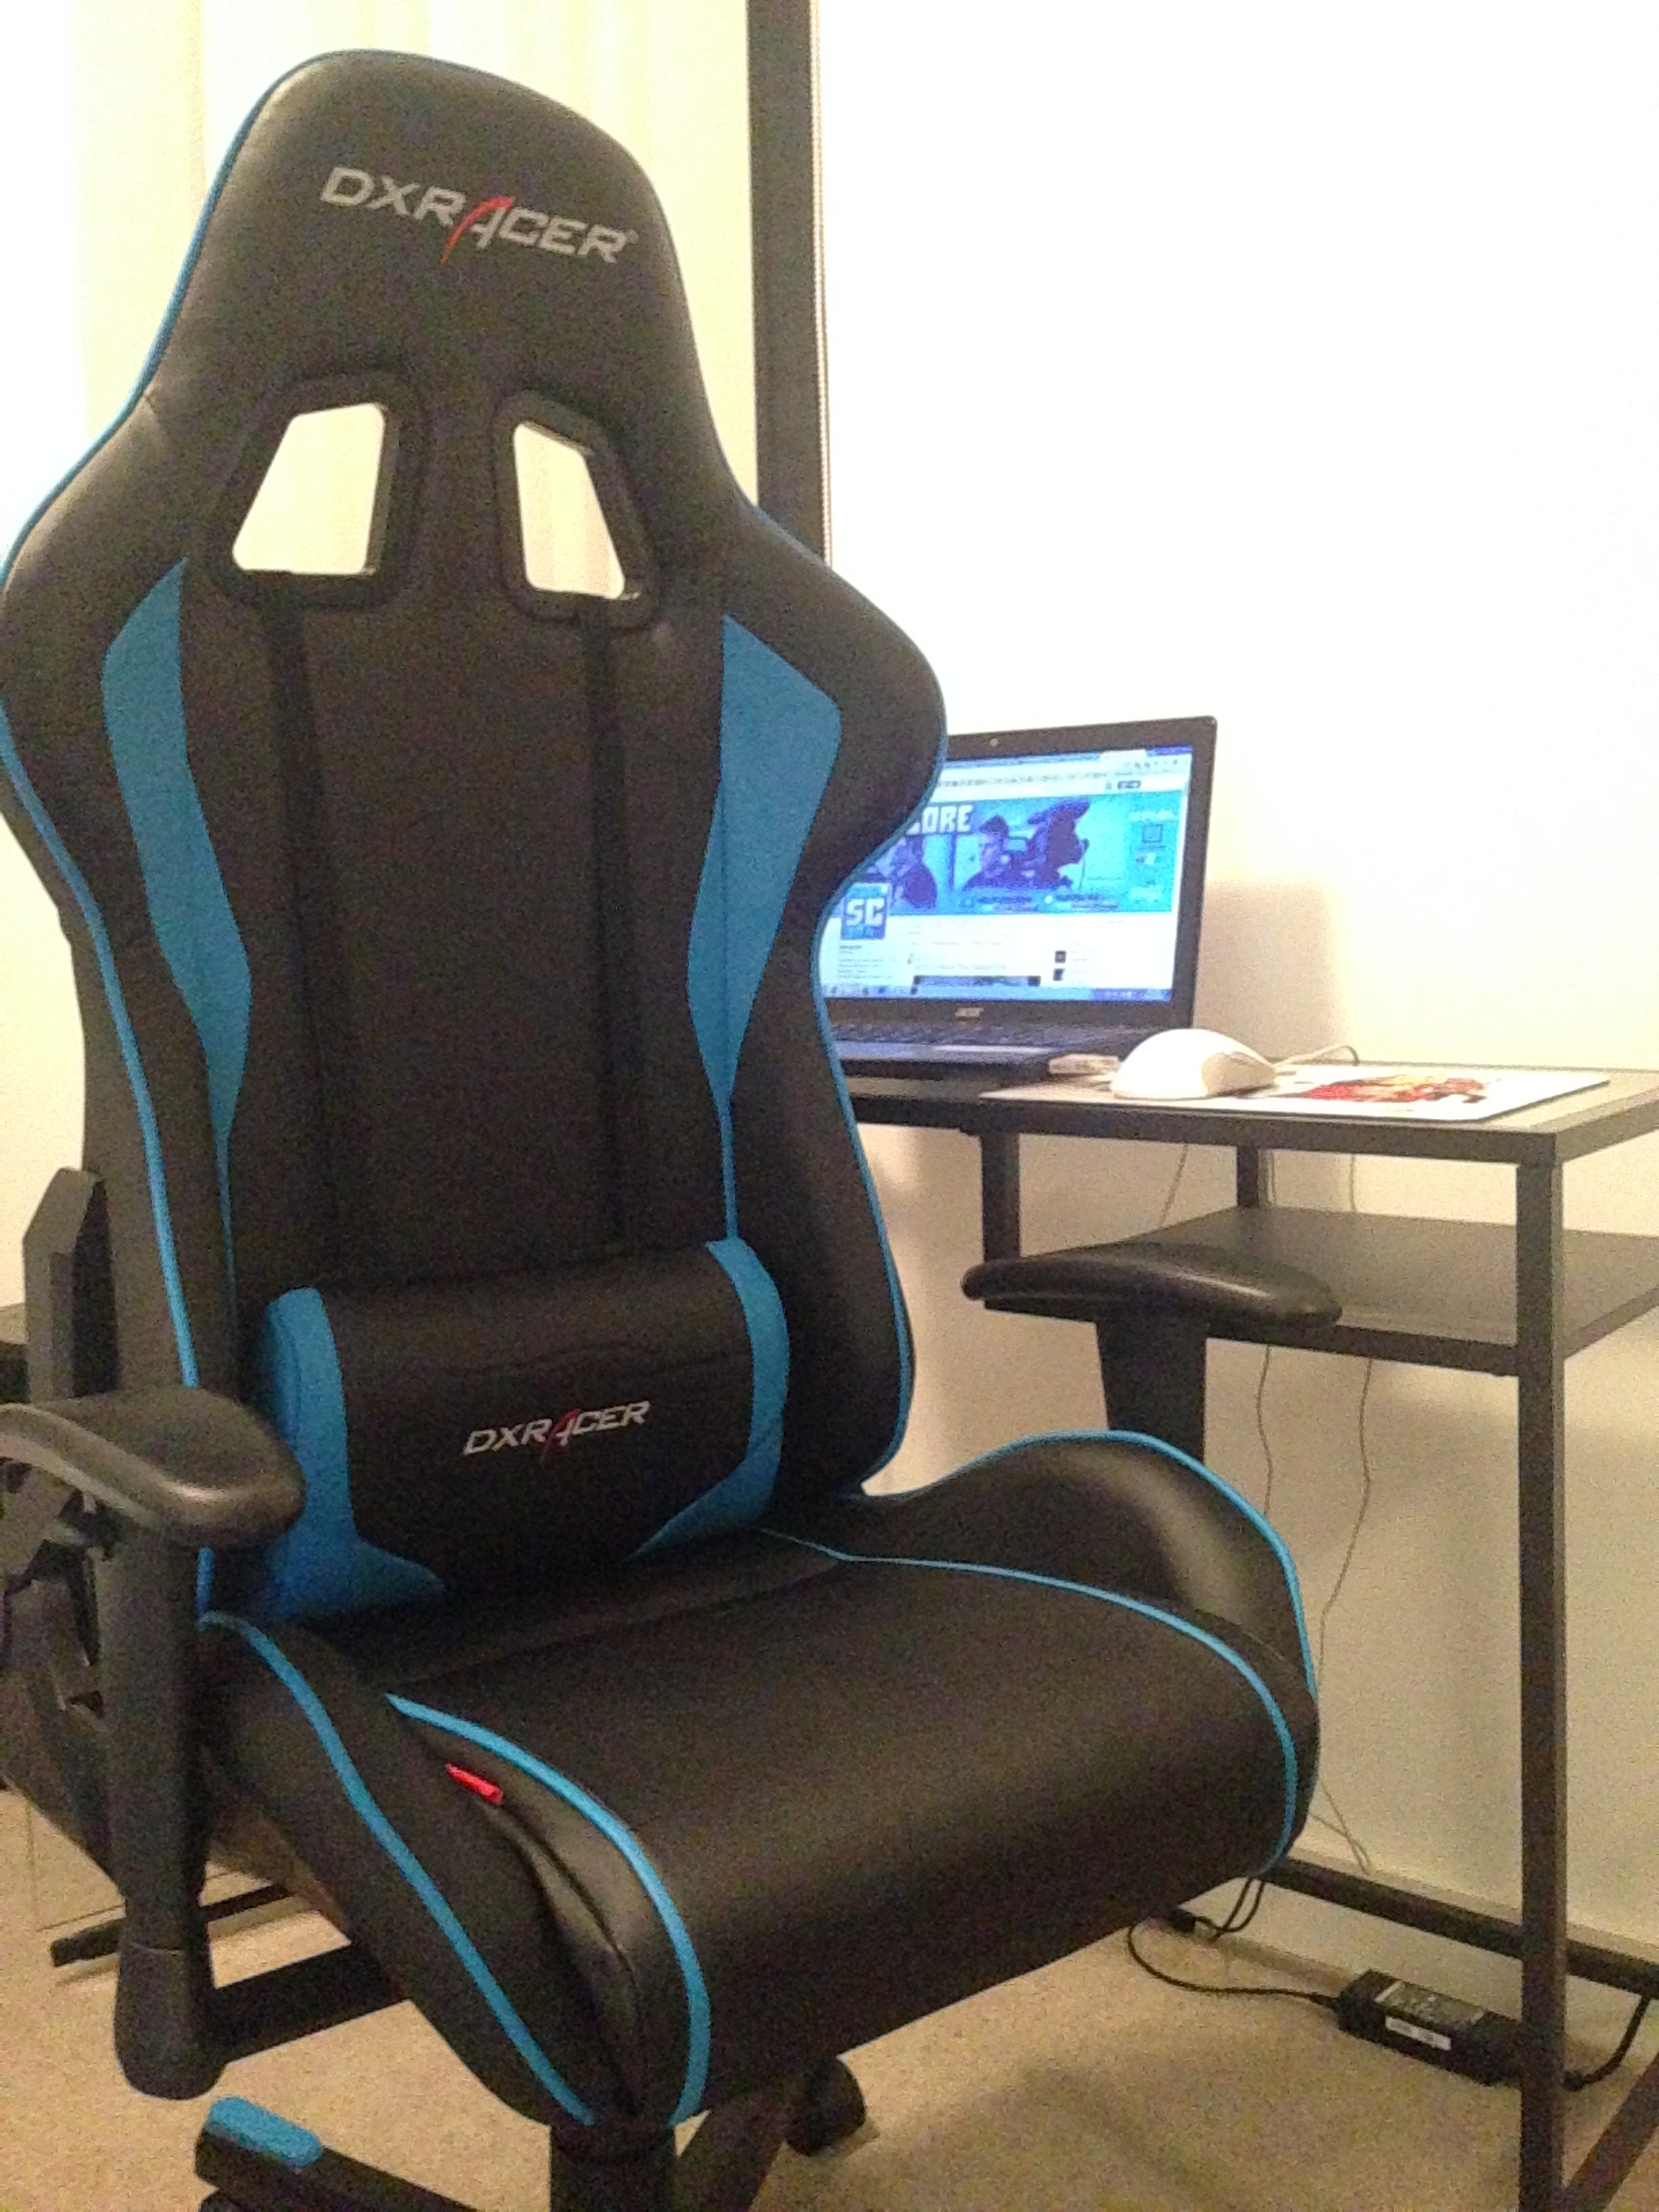 DXRacer Gaming Chair Review  Is it worth it  Silentc0recom